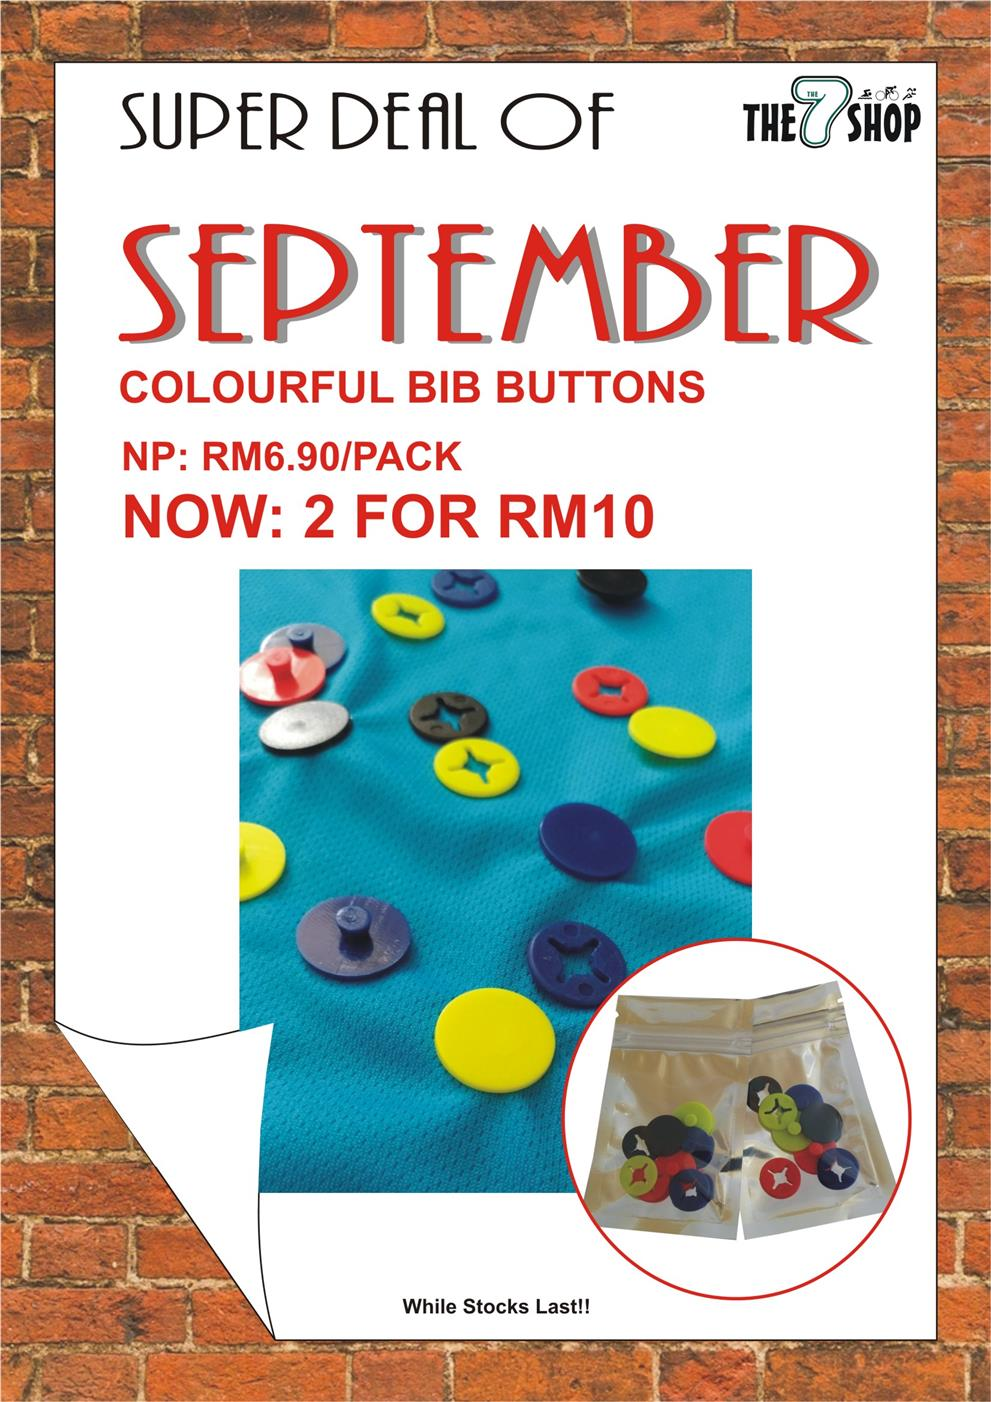 Super Deal of September - Colourful Bib Button